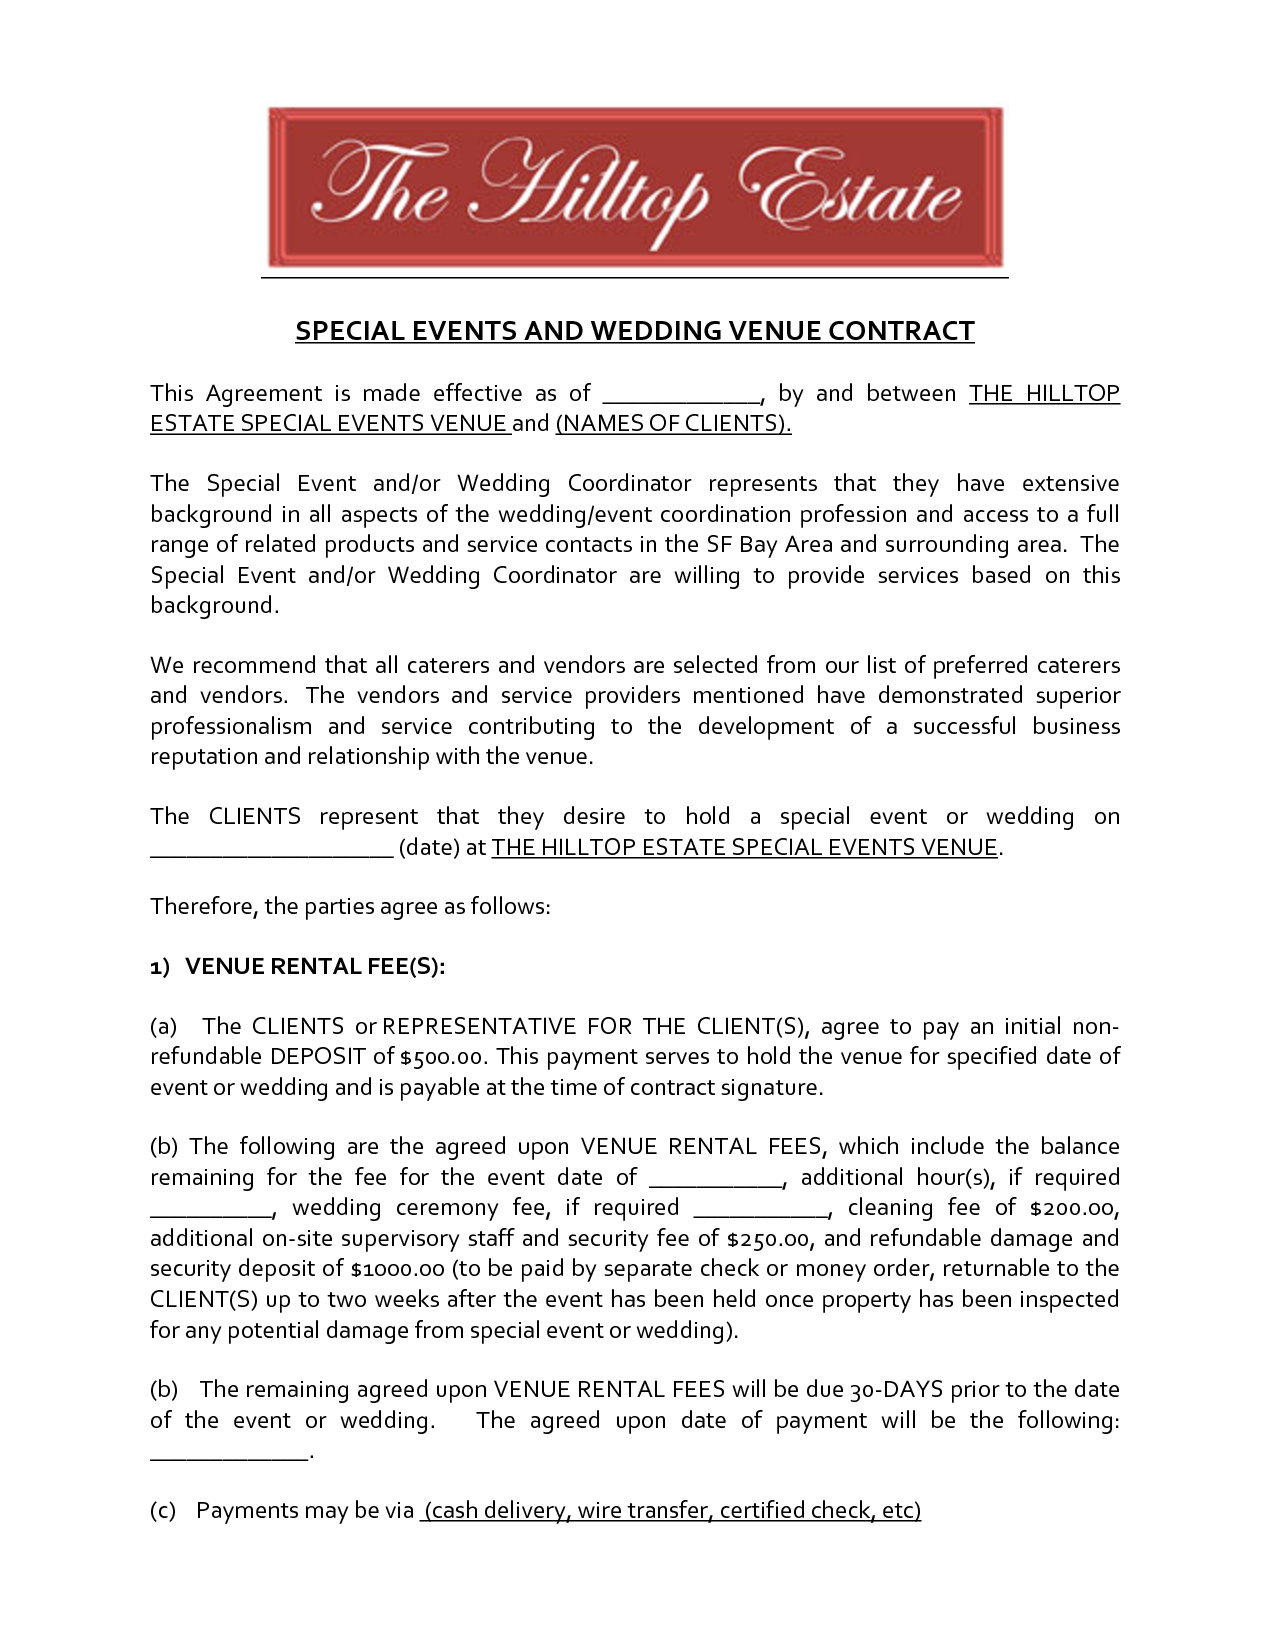 Marriage Ceremony Venue Contract Template